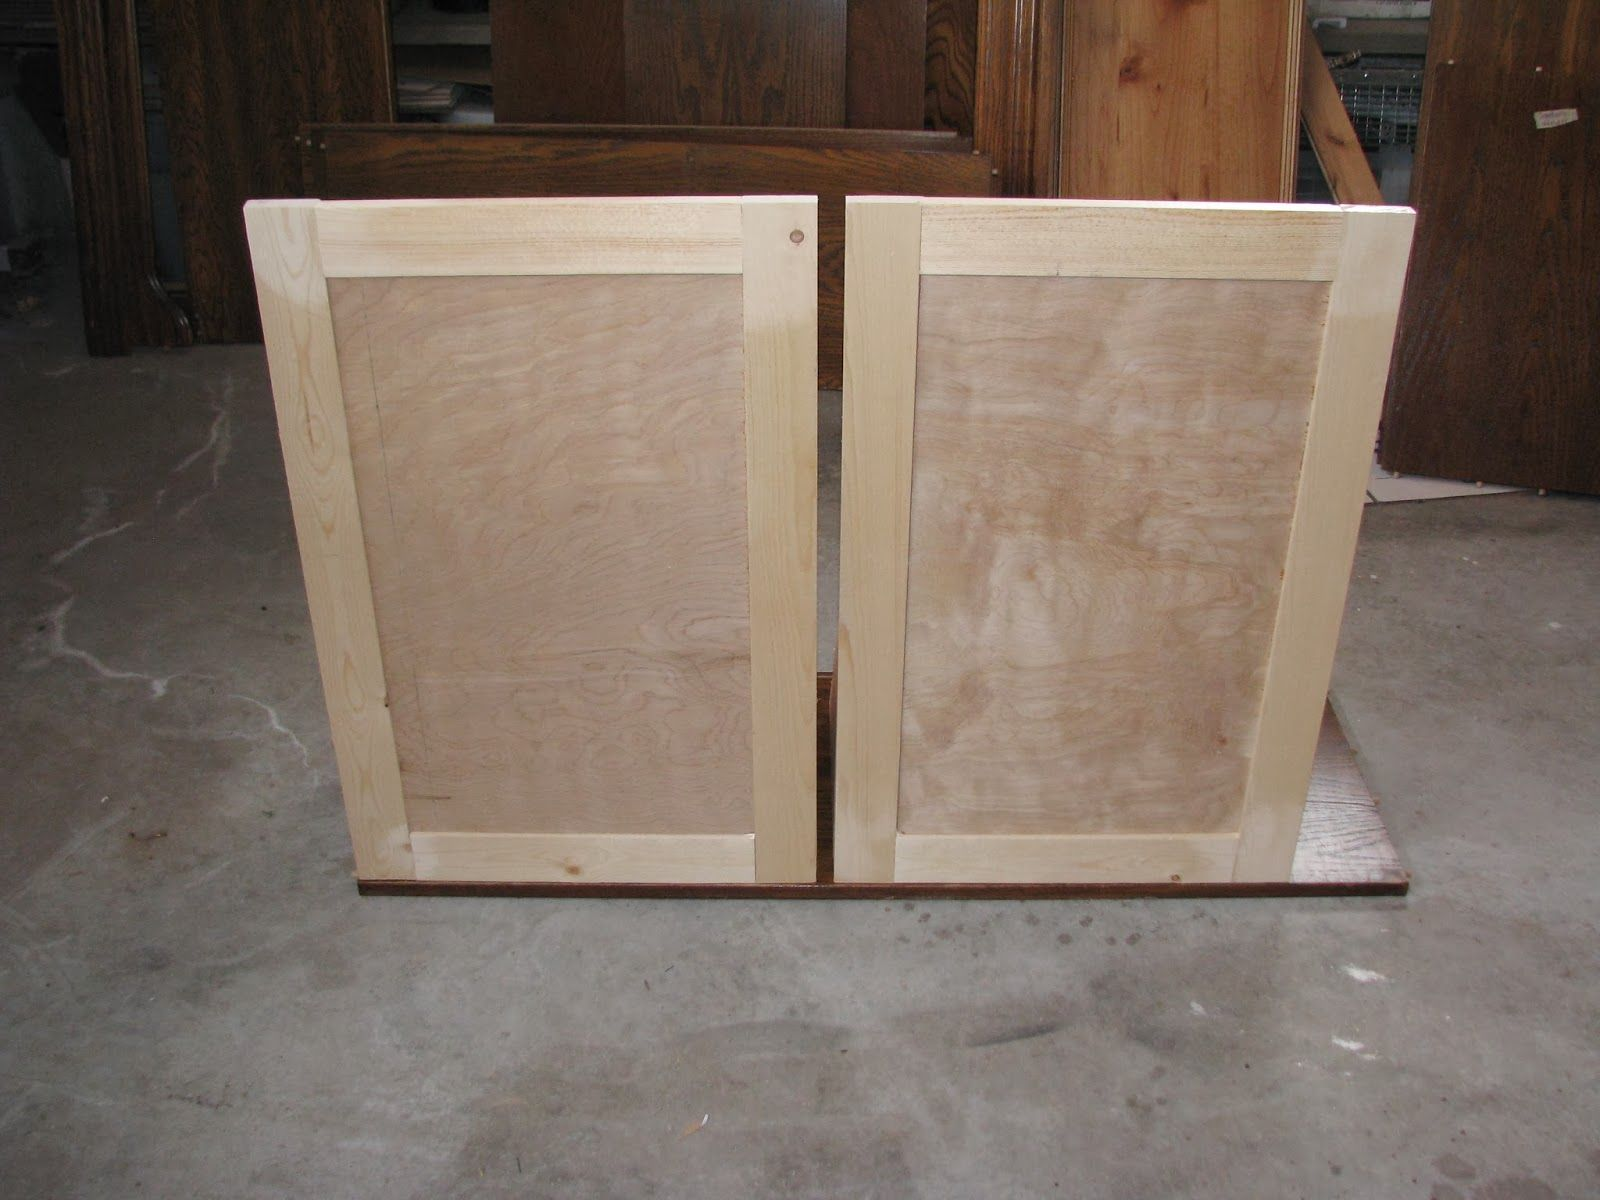 Making Cabinet Doors Using a Kreg Jig | DIY/Furniture Fix ...